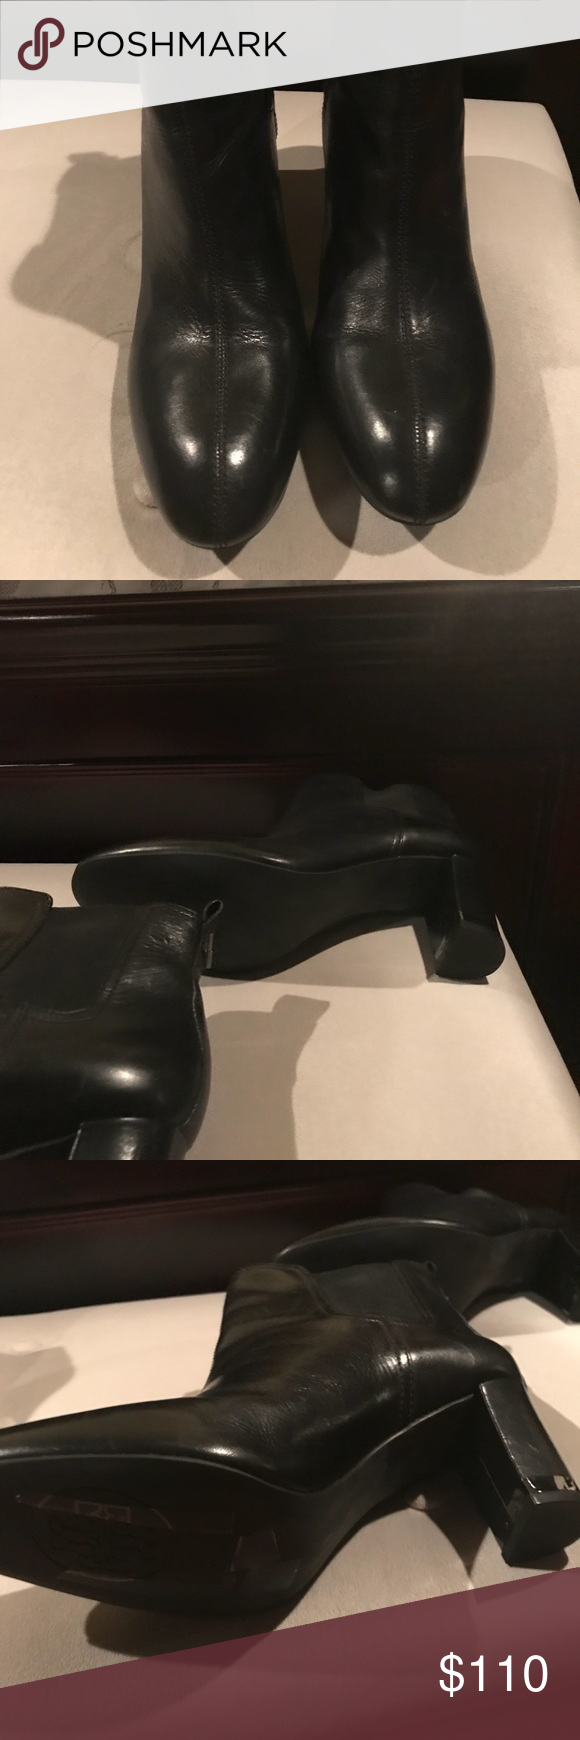 9170fac9ac15 Tory Burch April Bootie Cleaning out my closet. Barely worn great boots!!  In great shape but do not have the box. Tory Burch Shoes Ankle Boots    Booties